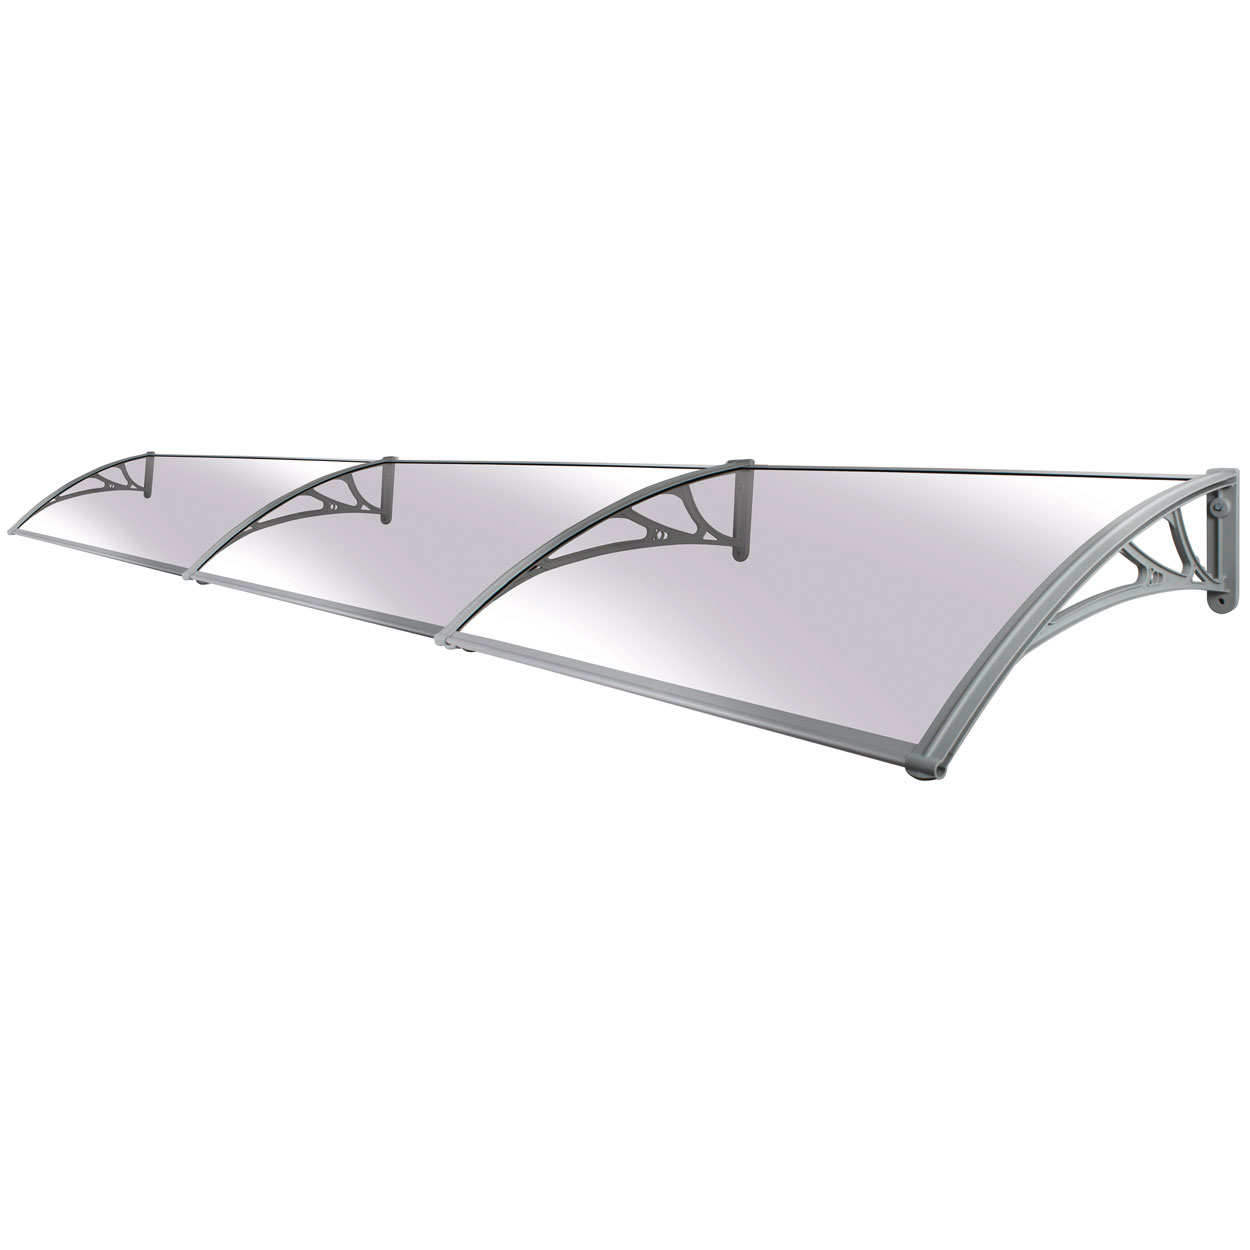 Garage Awning Extension Coopers Door Canopy Extension Kit